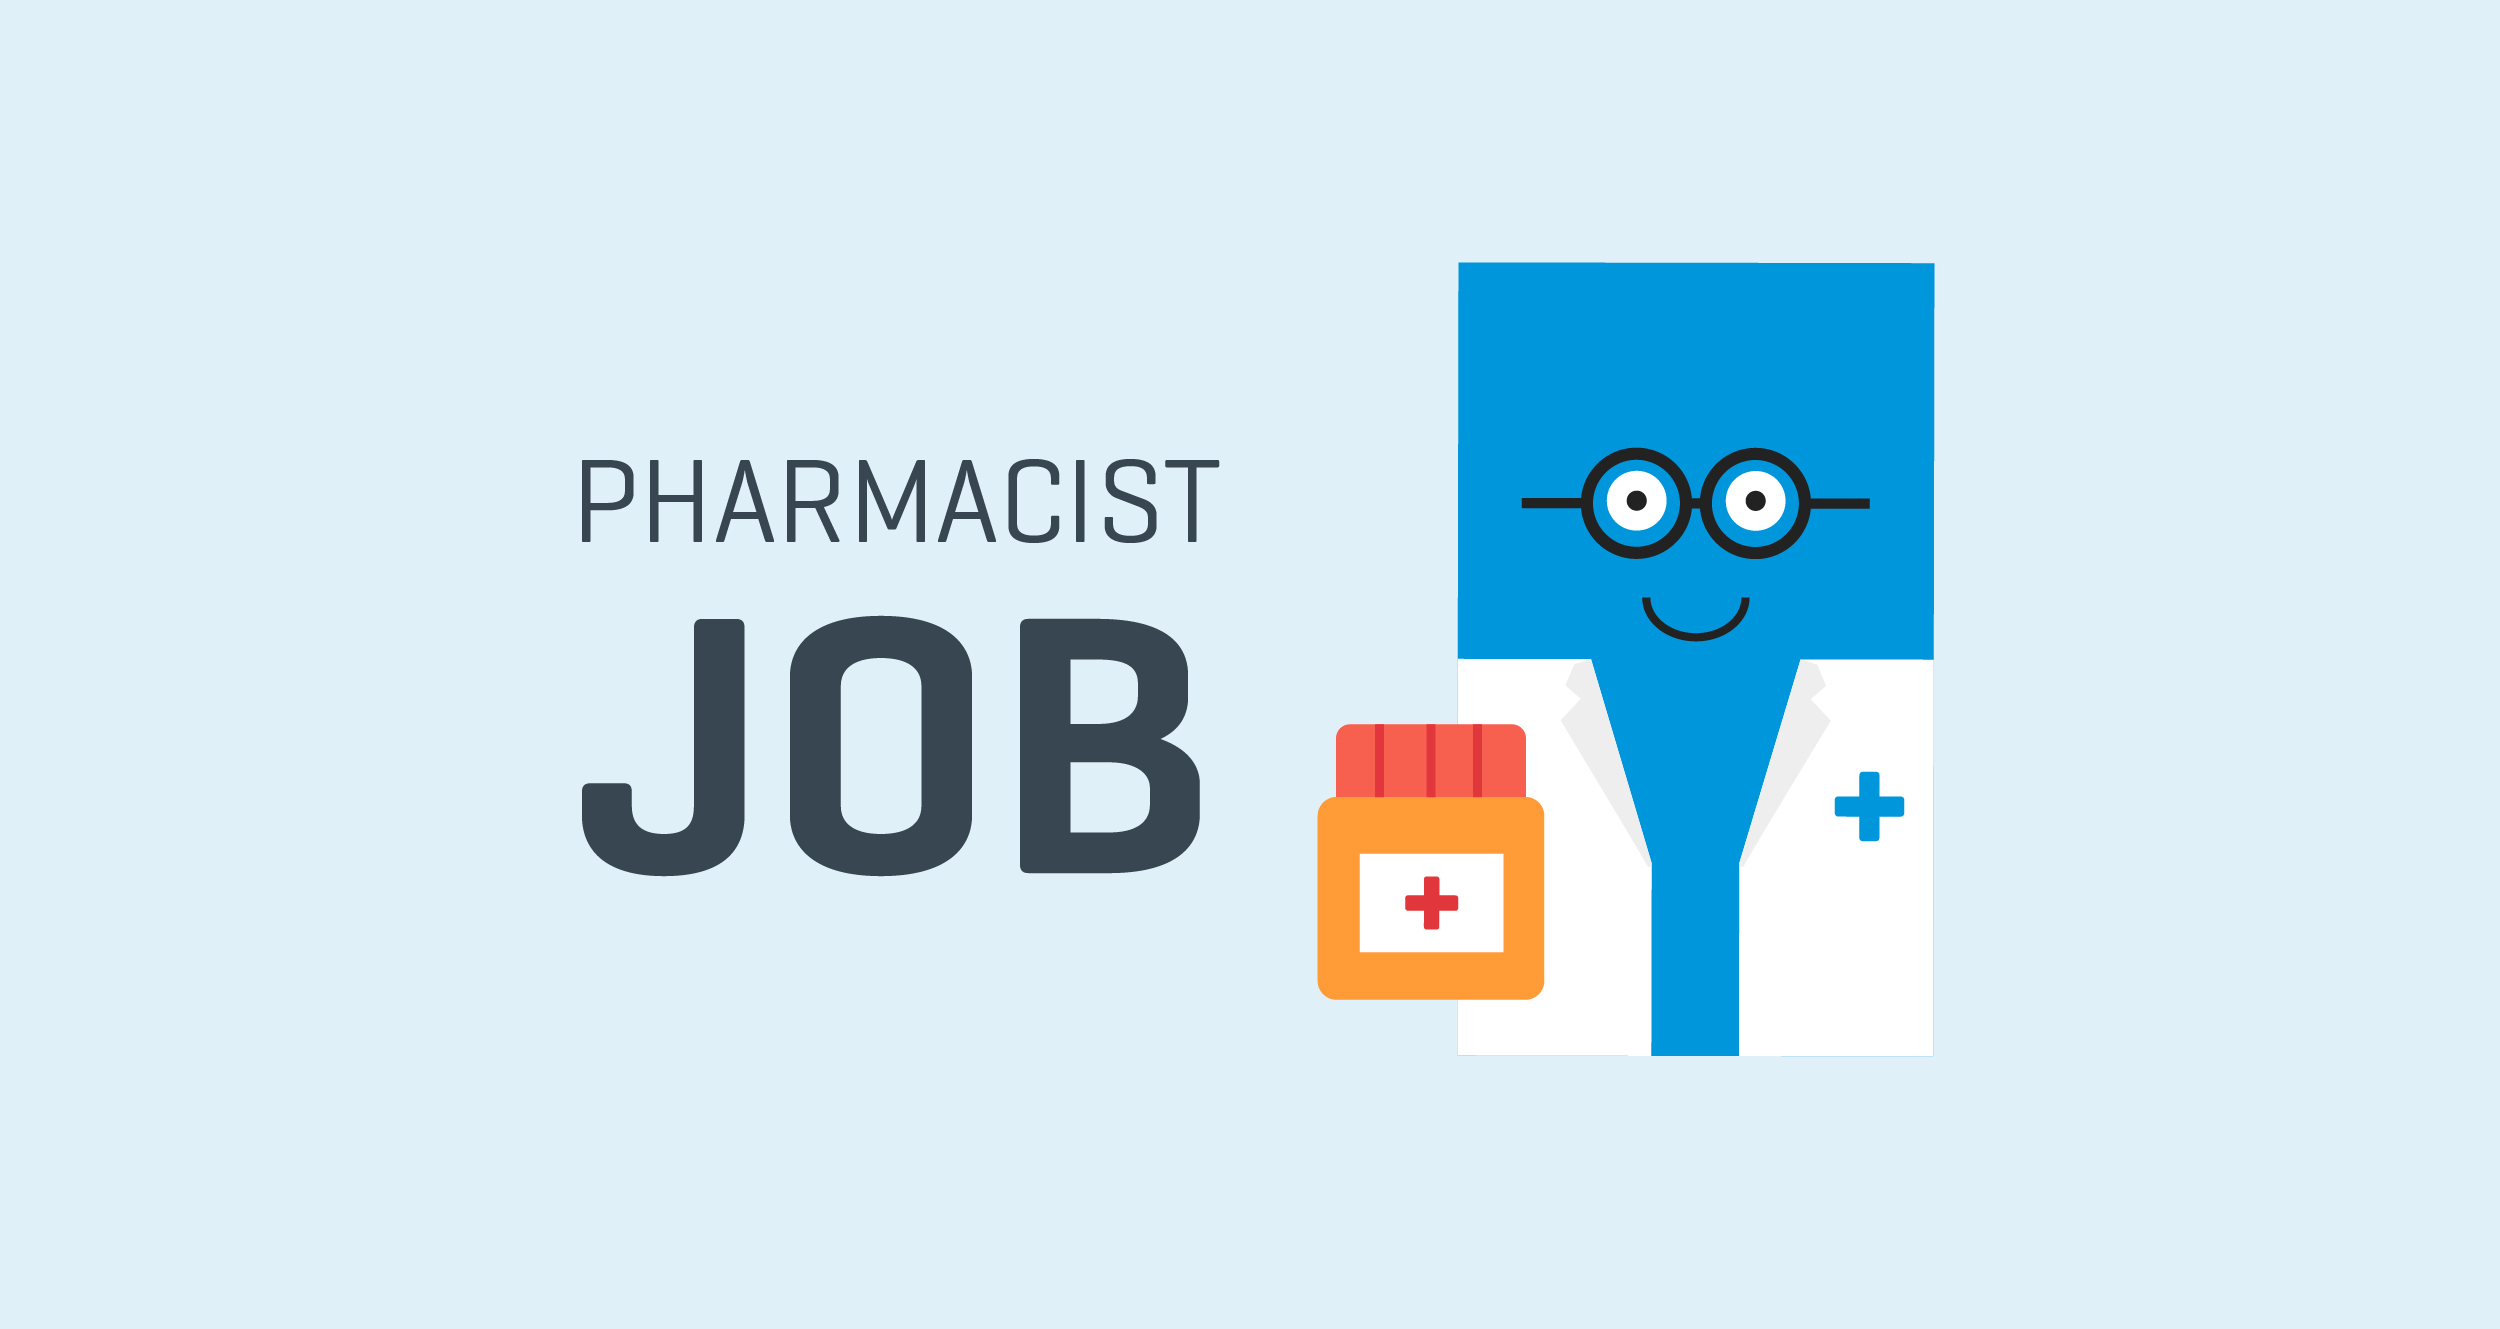 pharmacists Job|pharmacist job|pharmacist job|Pharmacist jobs in Egypt.